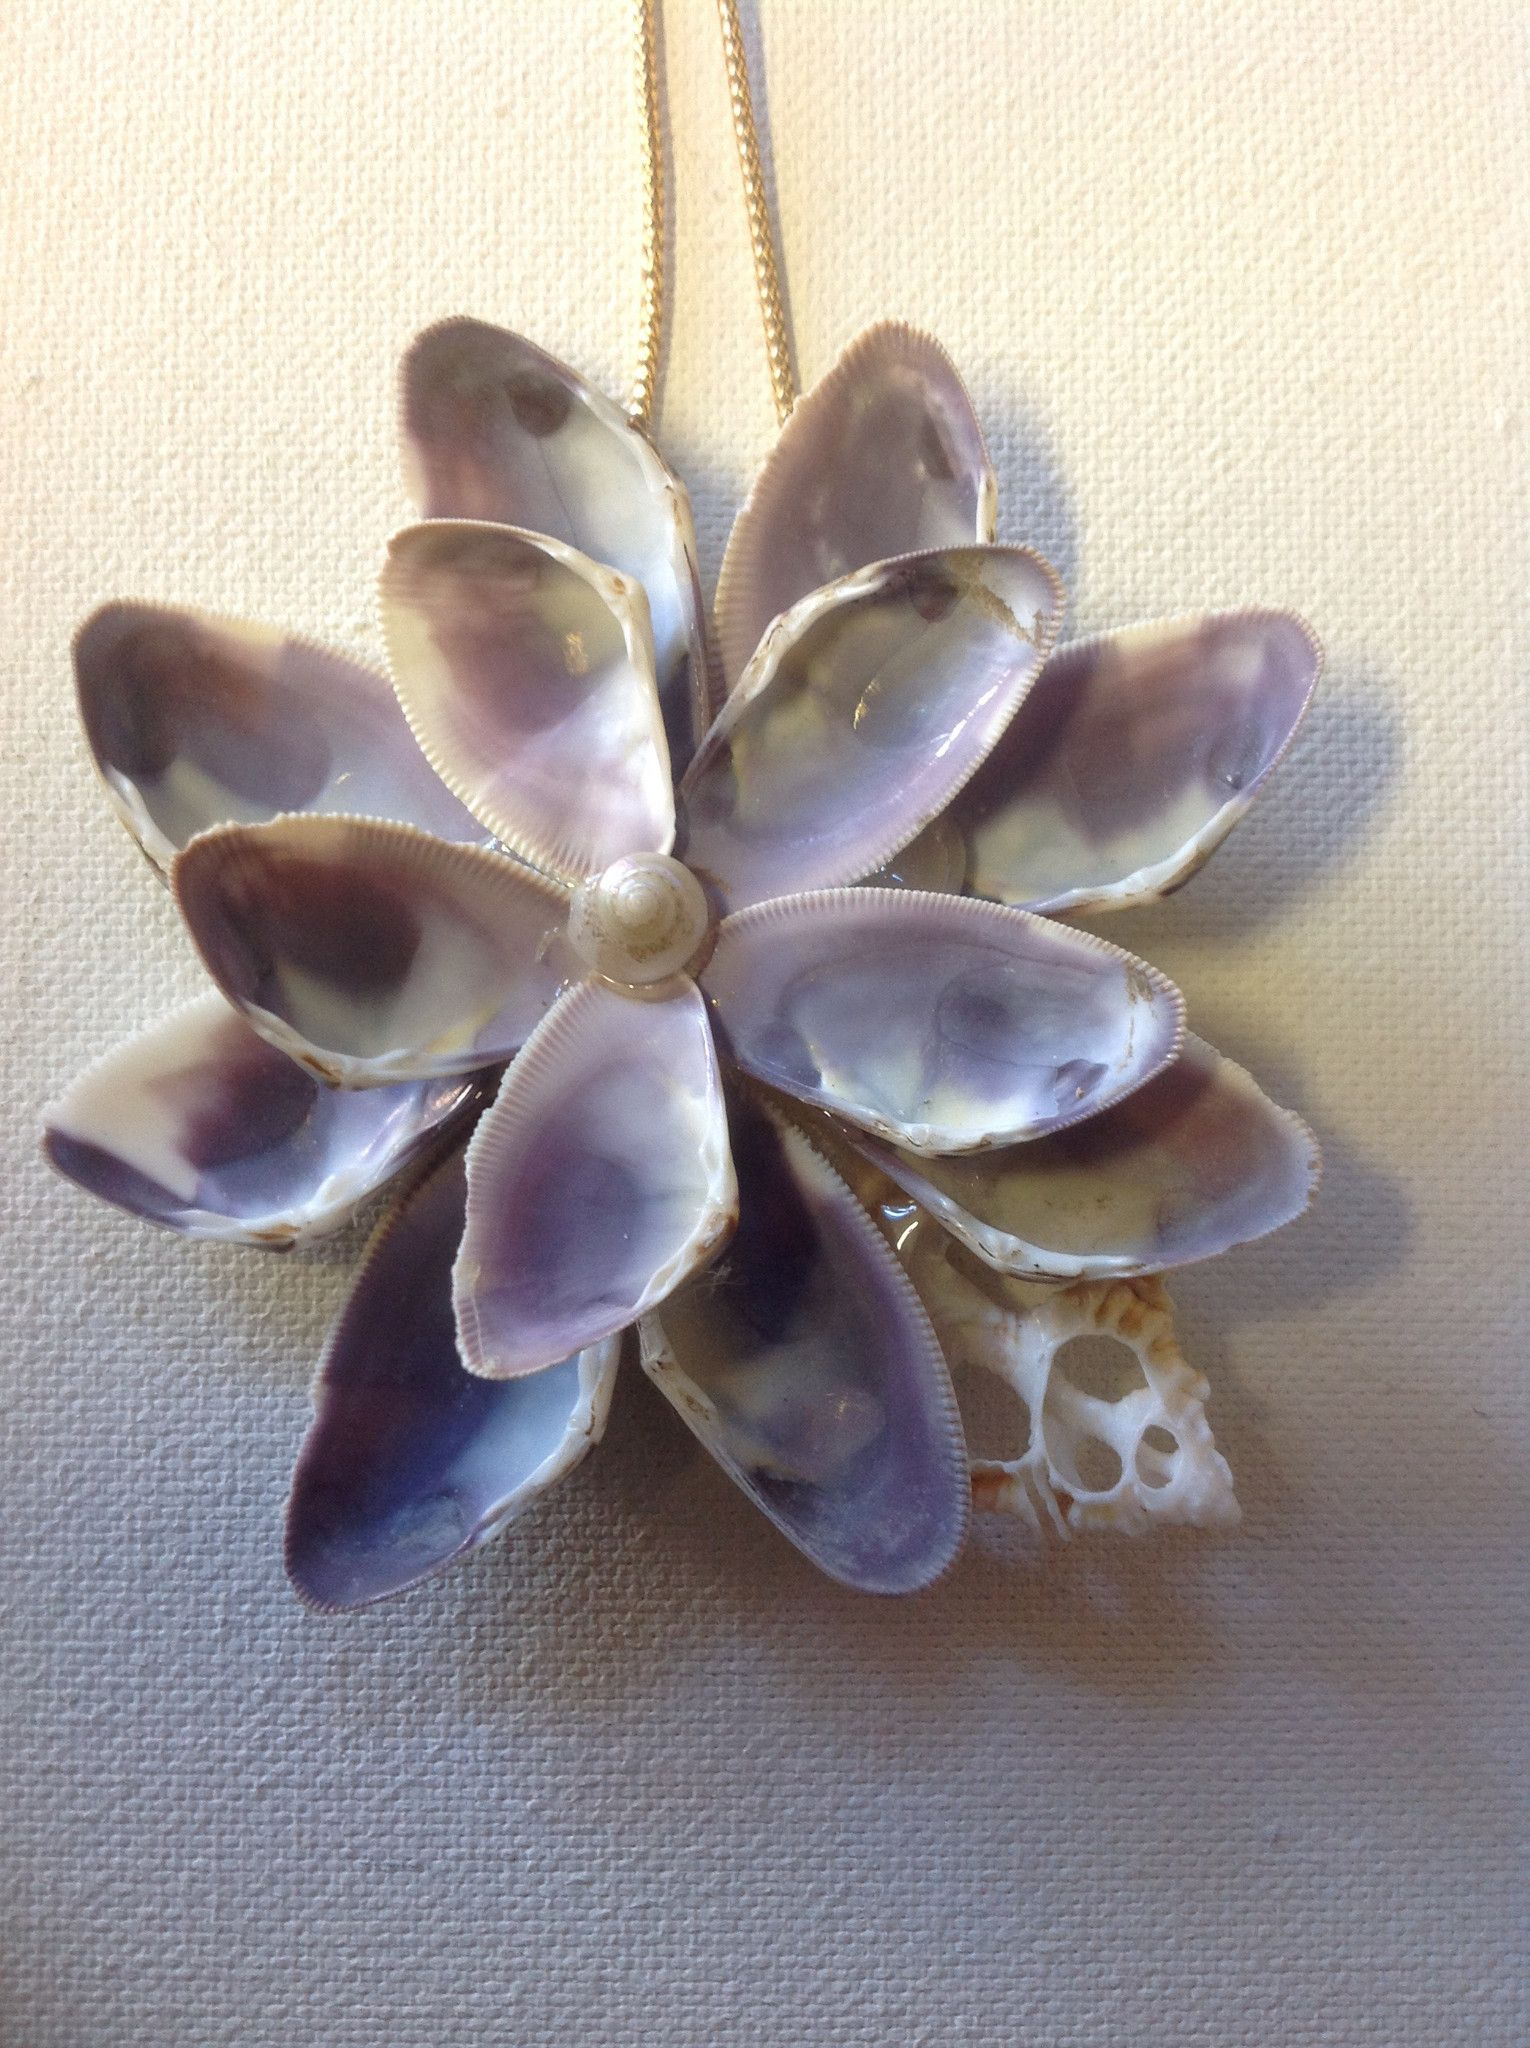 Seashell flower ornament flower ornaments shell and for Seashell ornaments craft